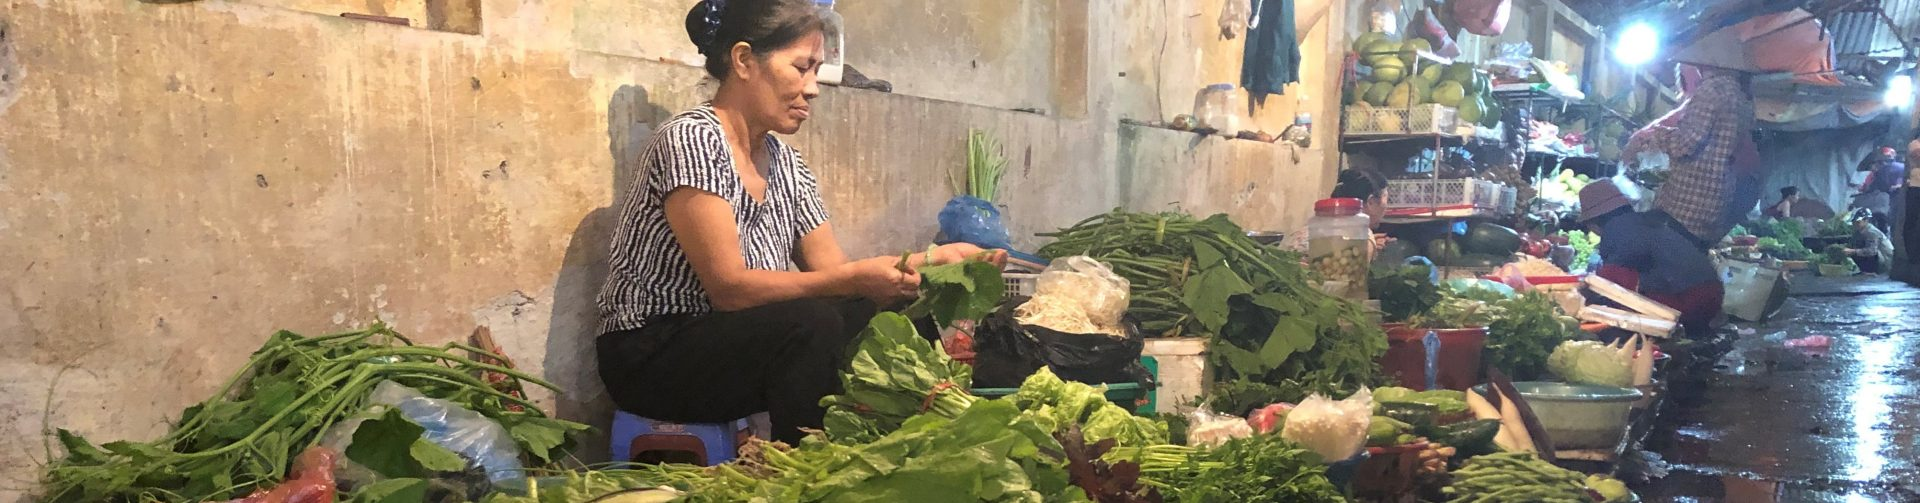 Informal Food Markets: What It Takes to Make Them Safer